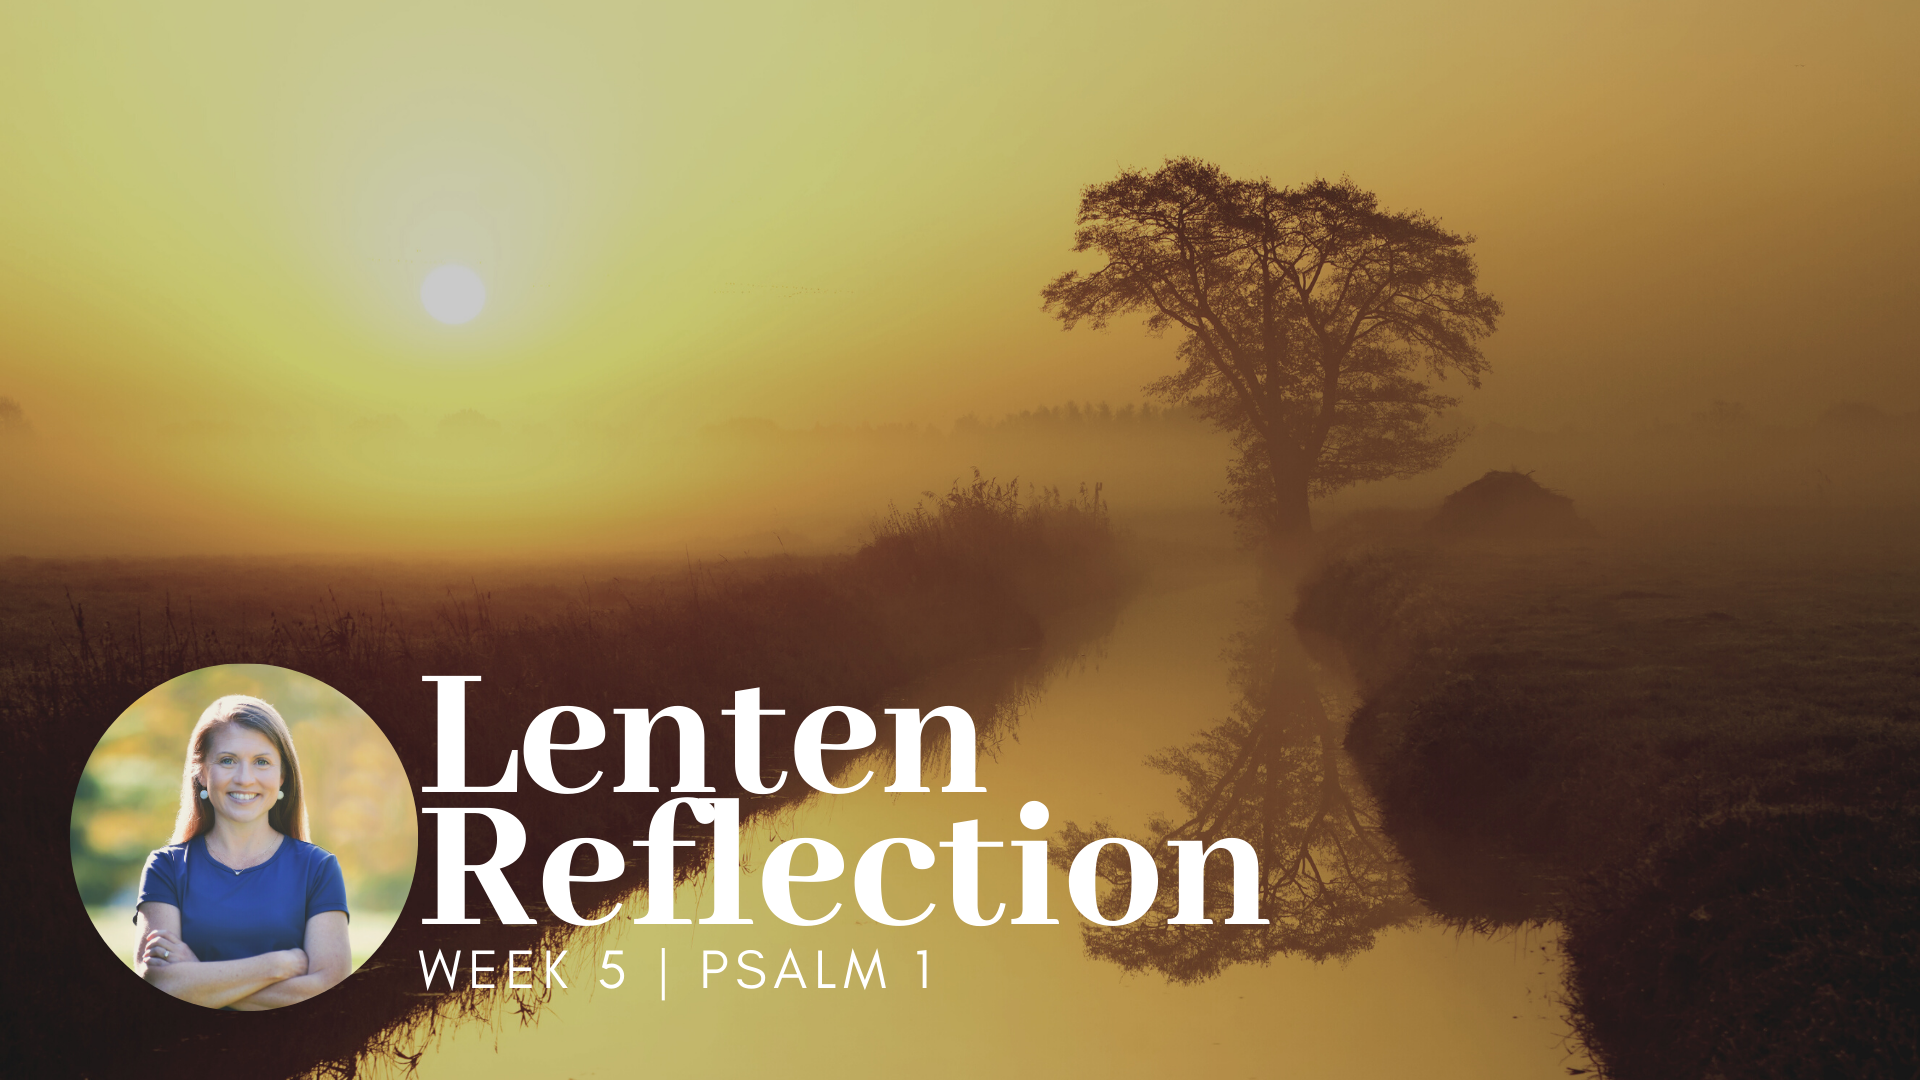 text overlay that says Lenten Reflection Psalm 1 over a picture of a sunset with a tree by a stream of water